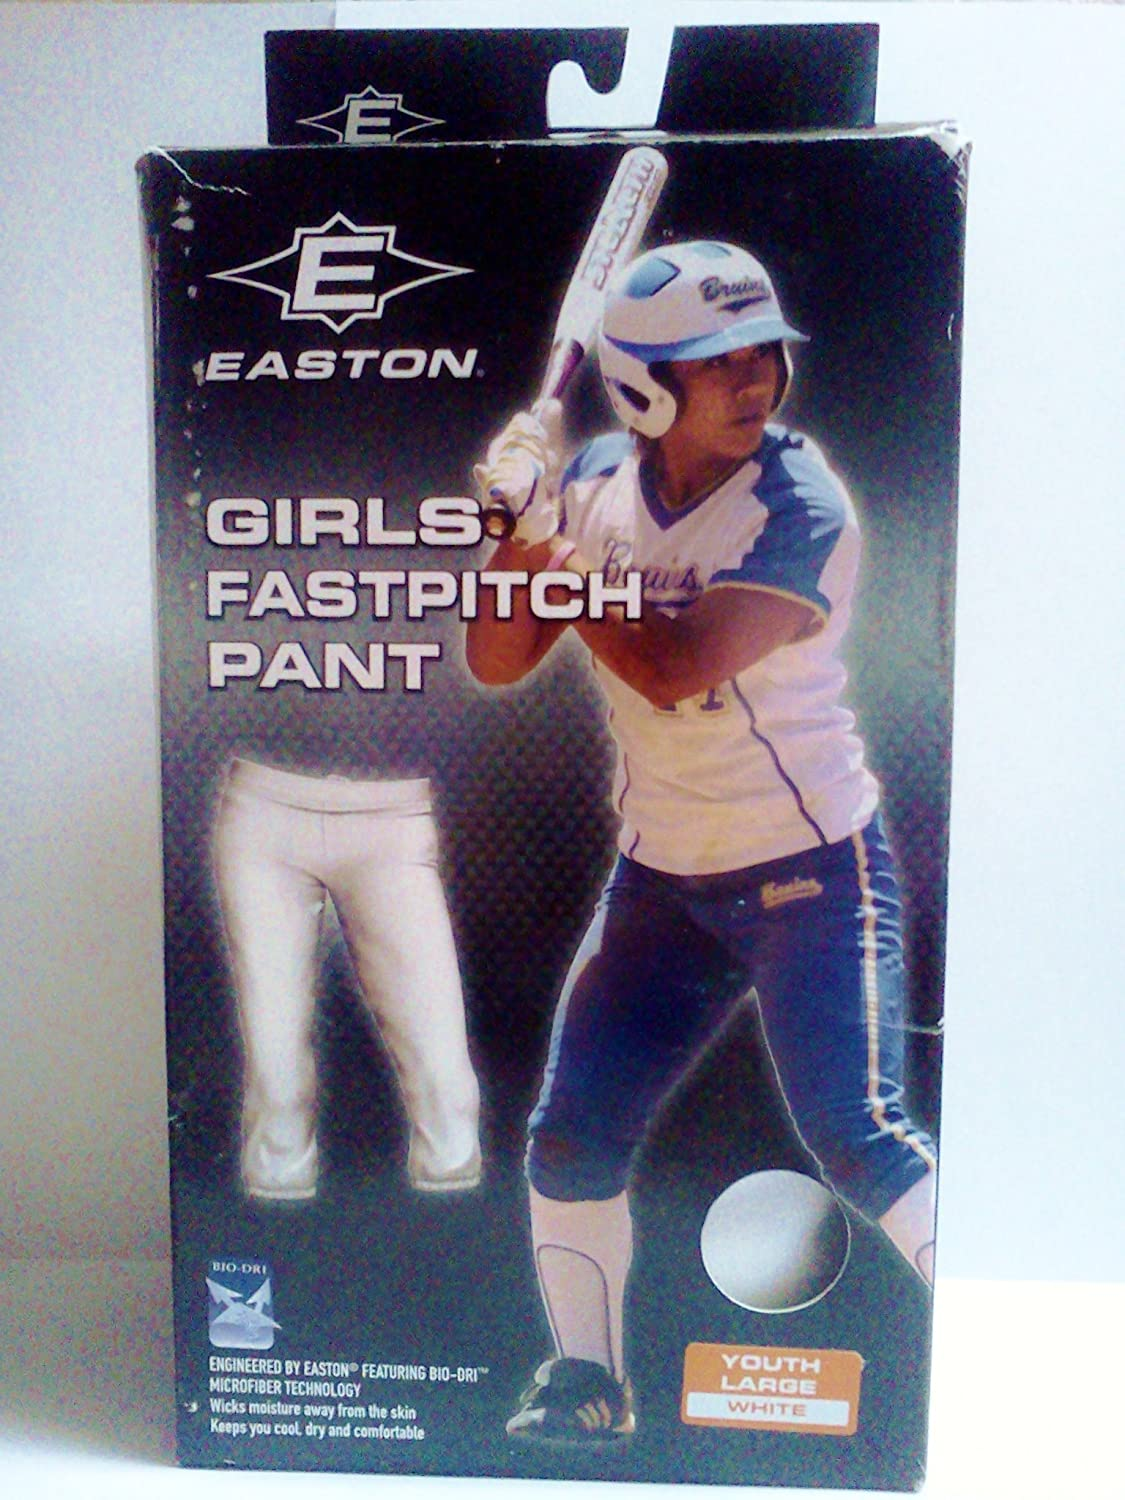 Large (Size 14-16) White Easton Youth Girls Fastpitch Pant ~ Low-Rise Elastic Waistband Softball Uniform Pants 1005977